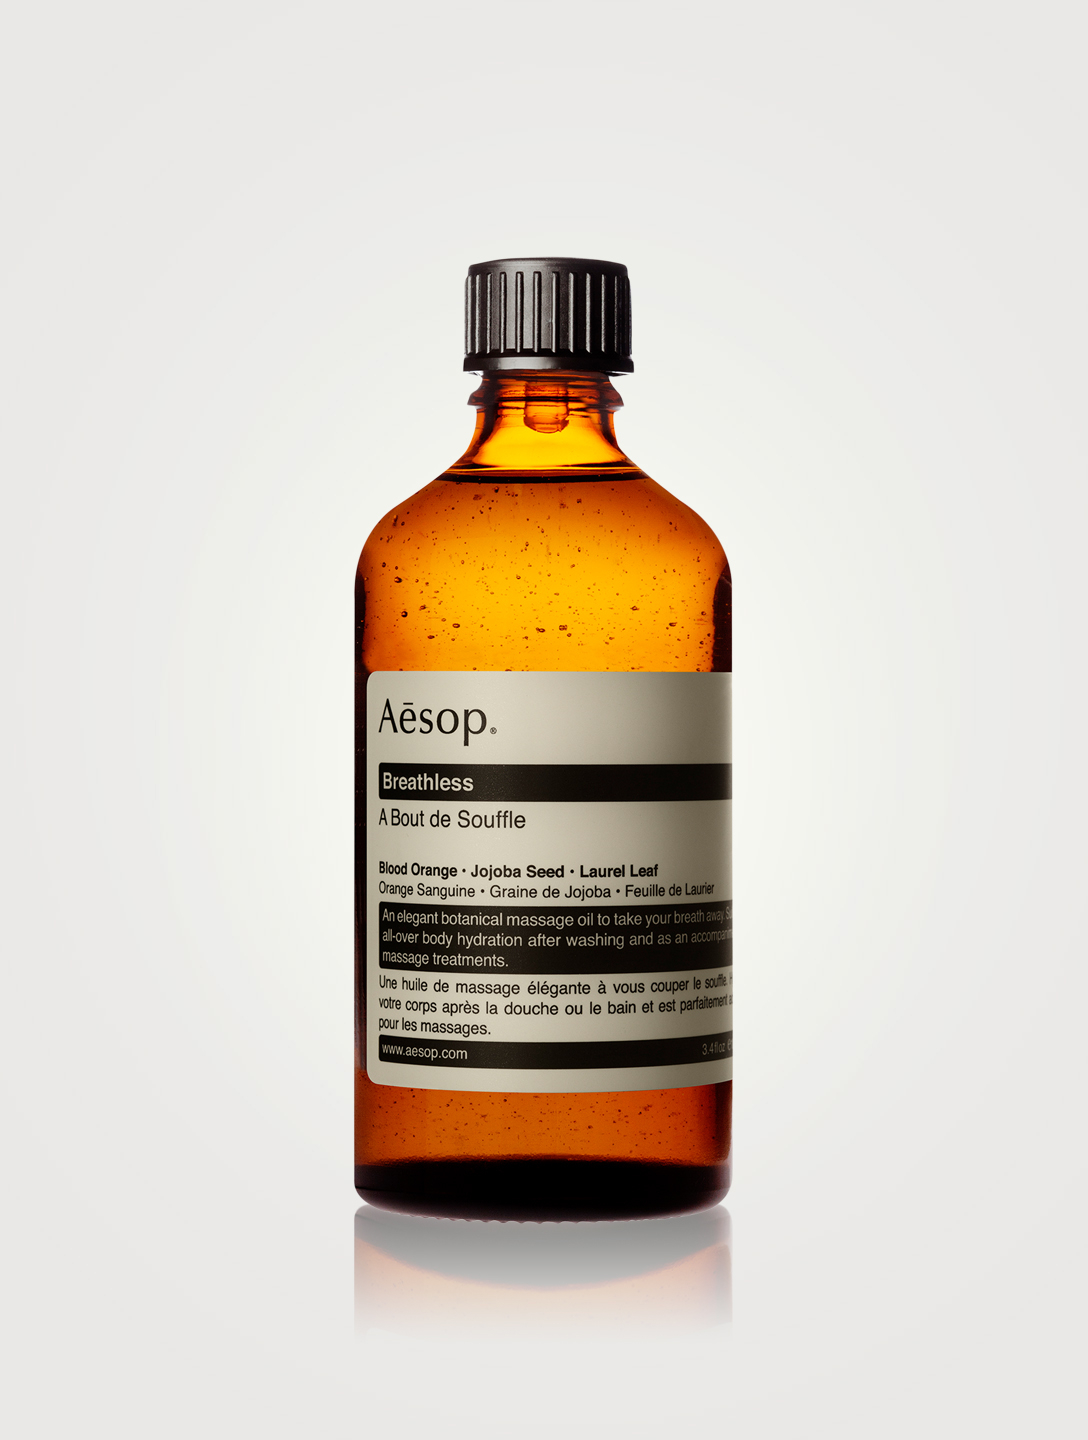 AESOP Breathless Massage Oil Beauty